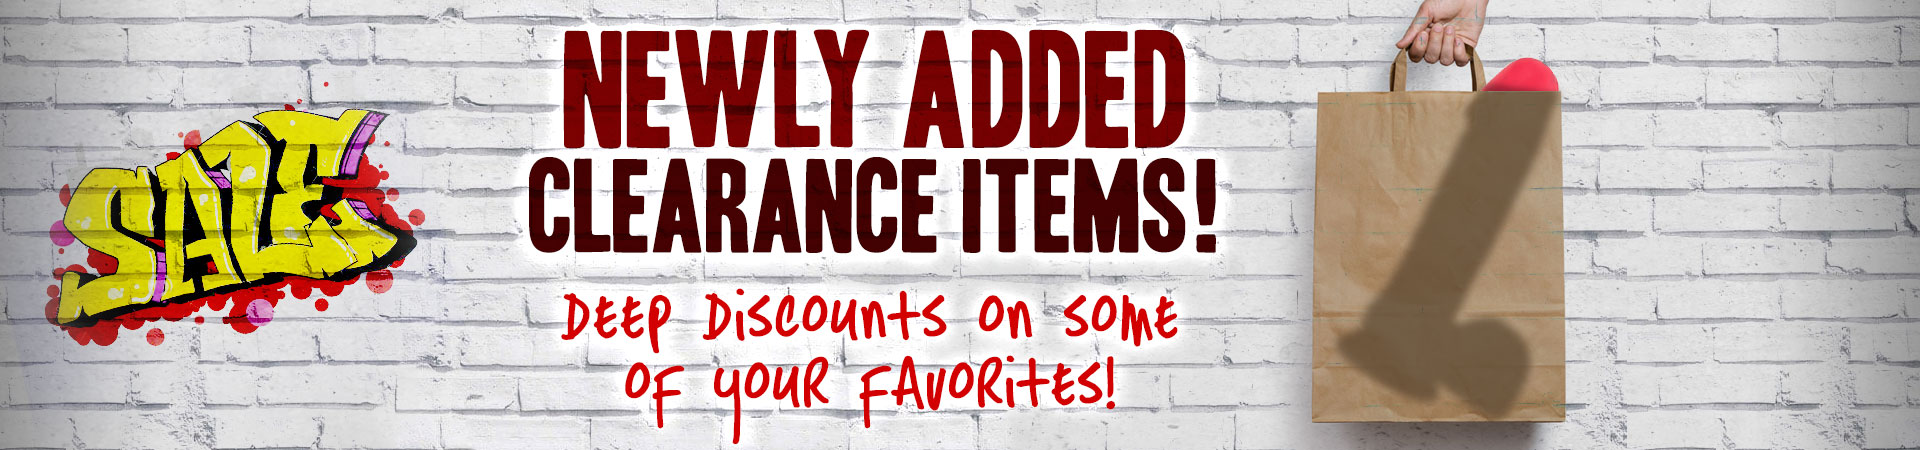 Newly Added Clearance!